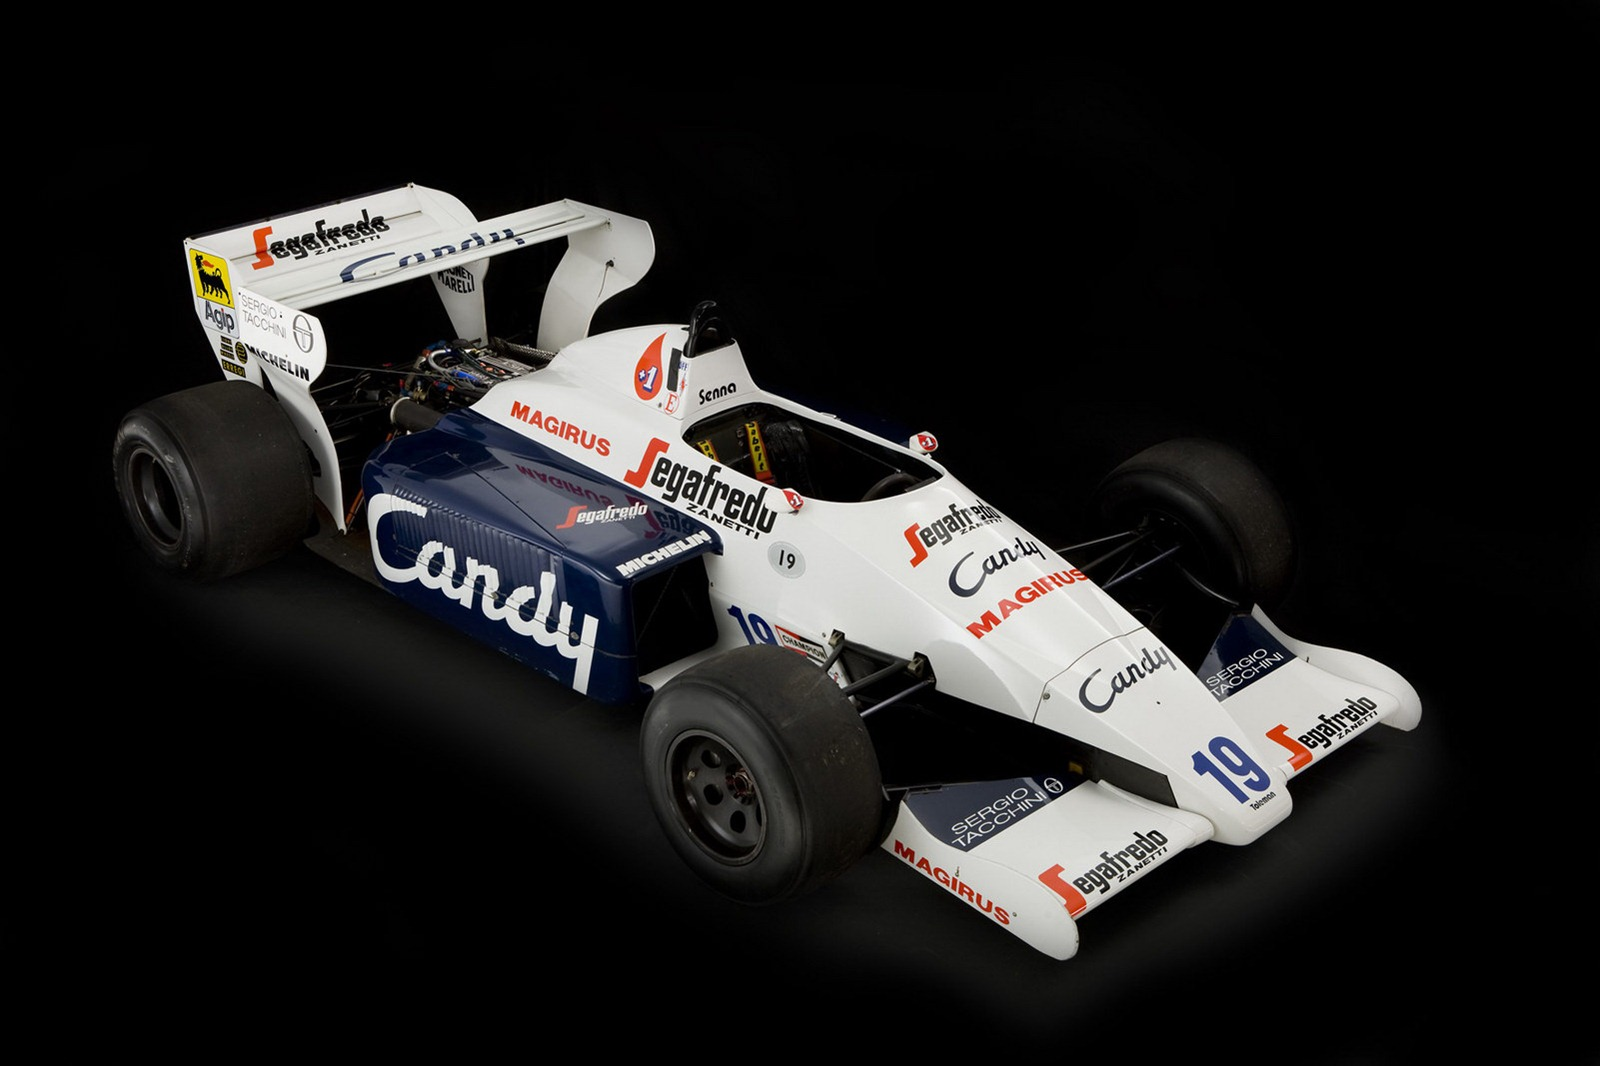 1984 Formula F1 Race Car Used by Ayrton Senna for Sale - autoevolution